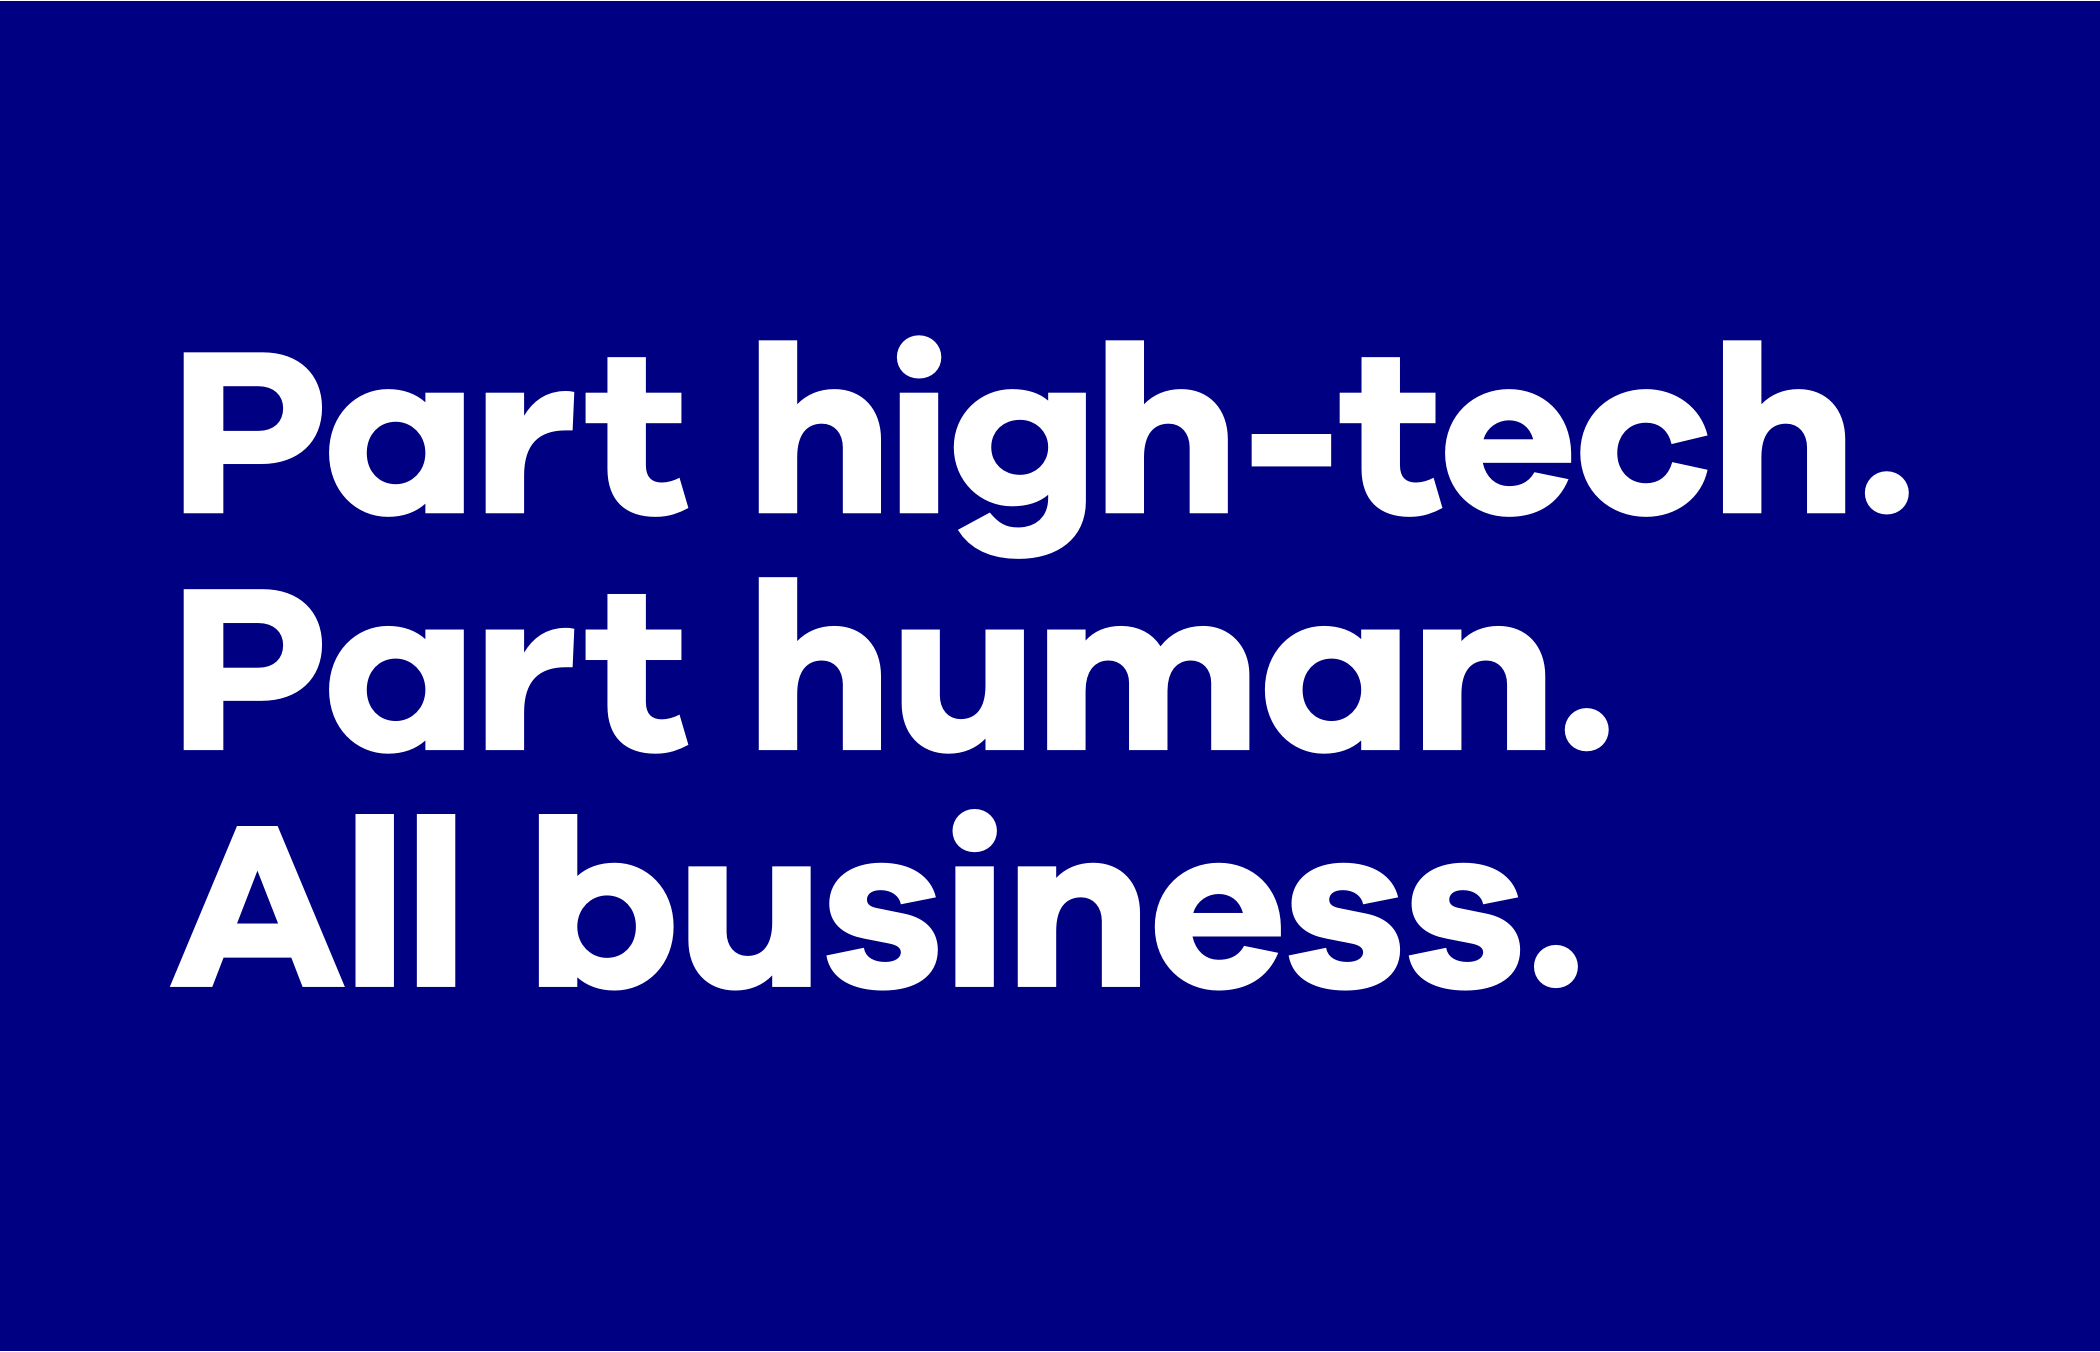 """The text """"Part high-tech. Part human. All business."""" in bold white letters on a dark blue background."""